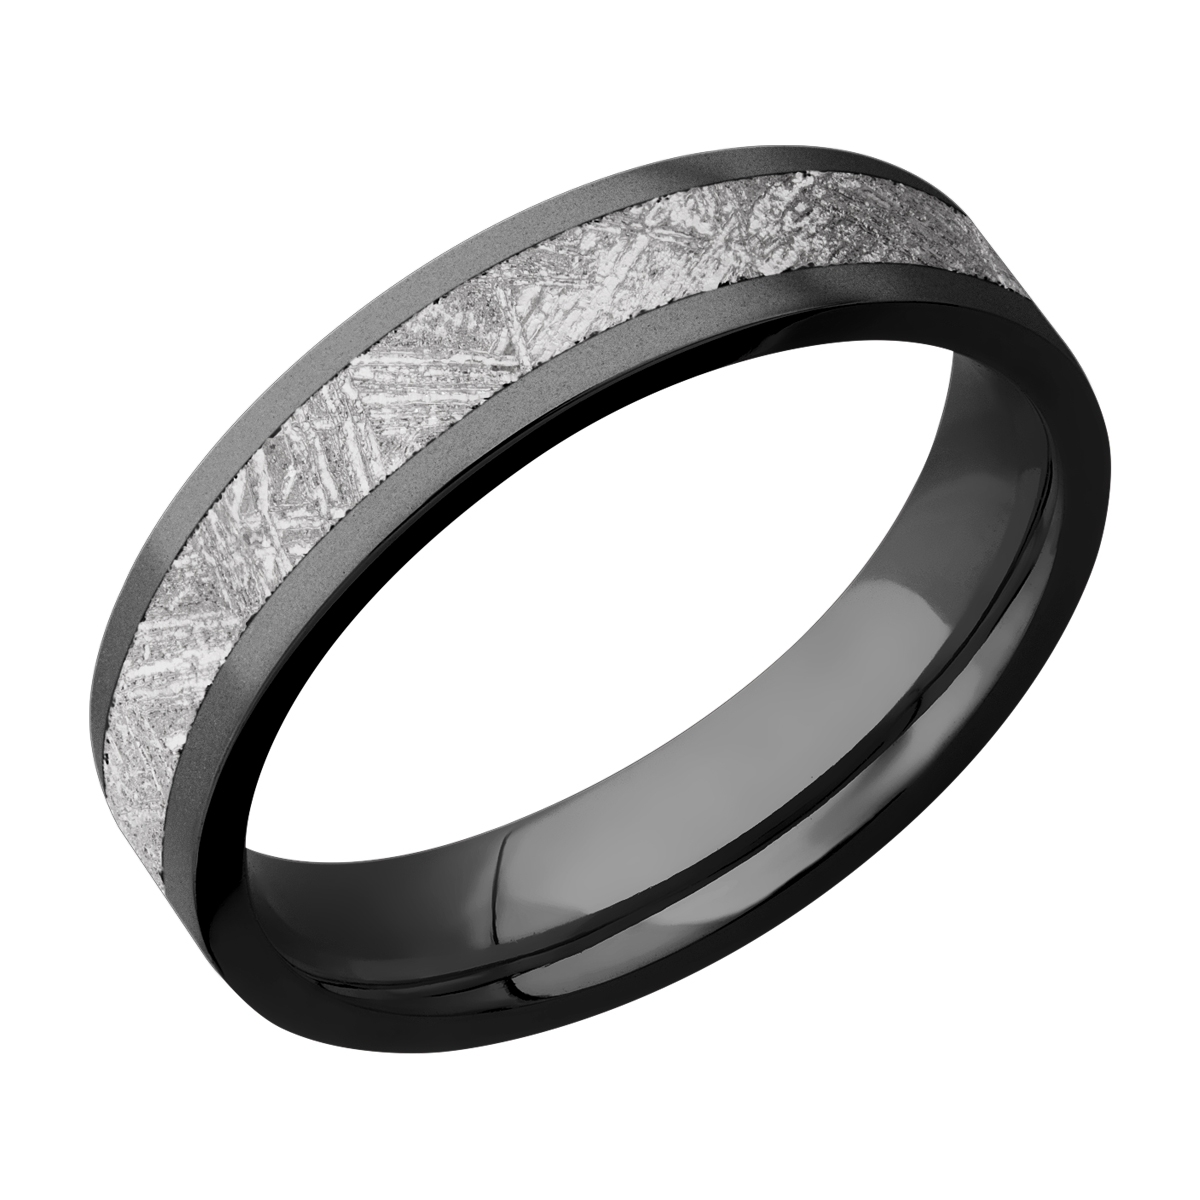 Lashbrook Z5F13/METEORITE Zirconium Wedding Ring or Band